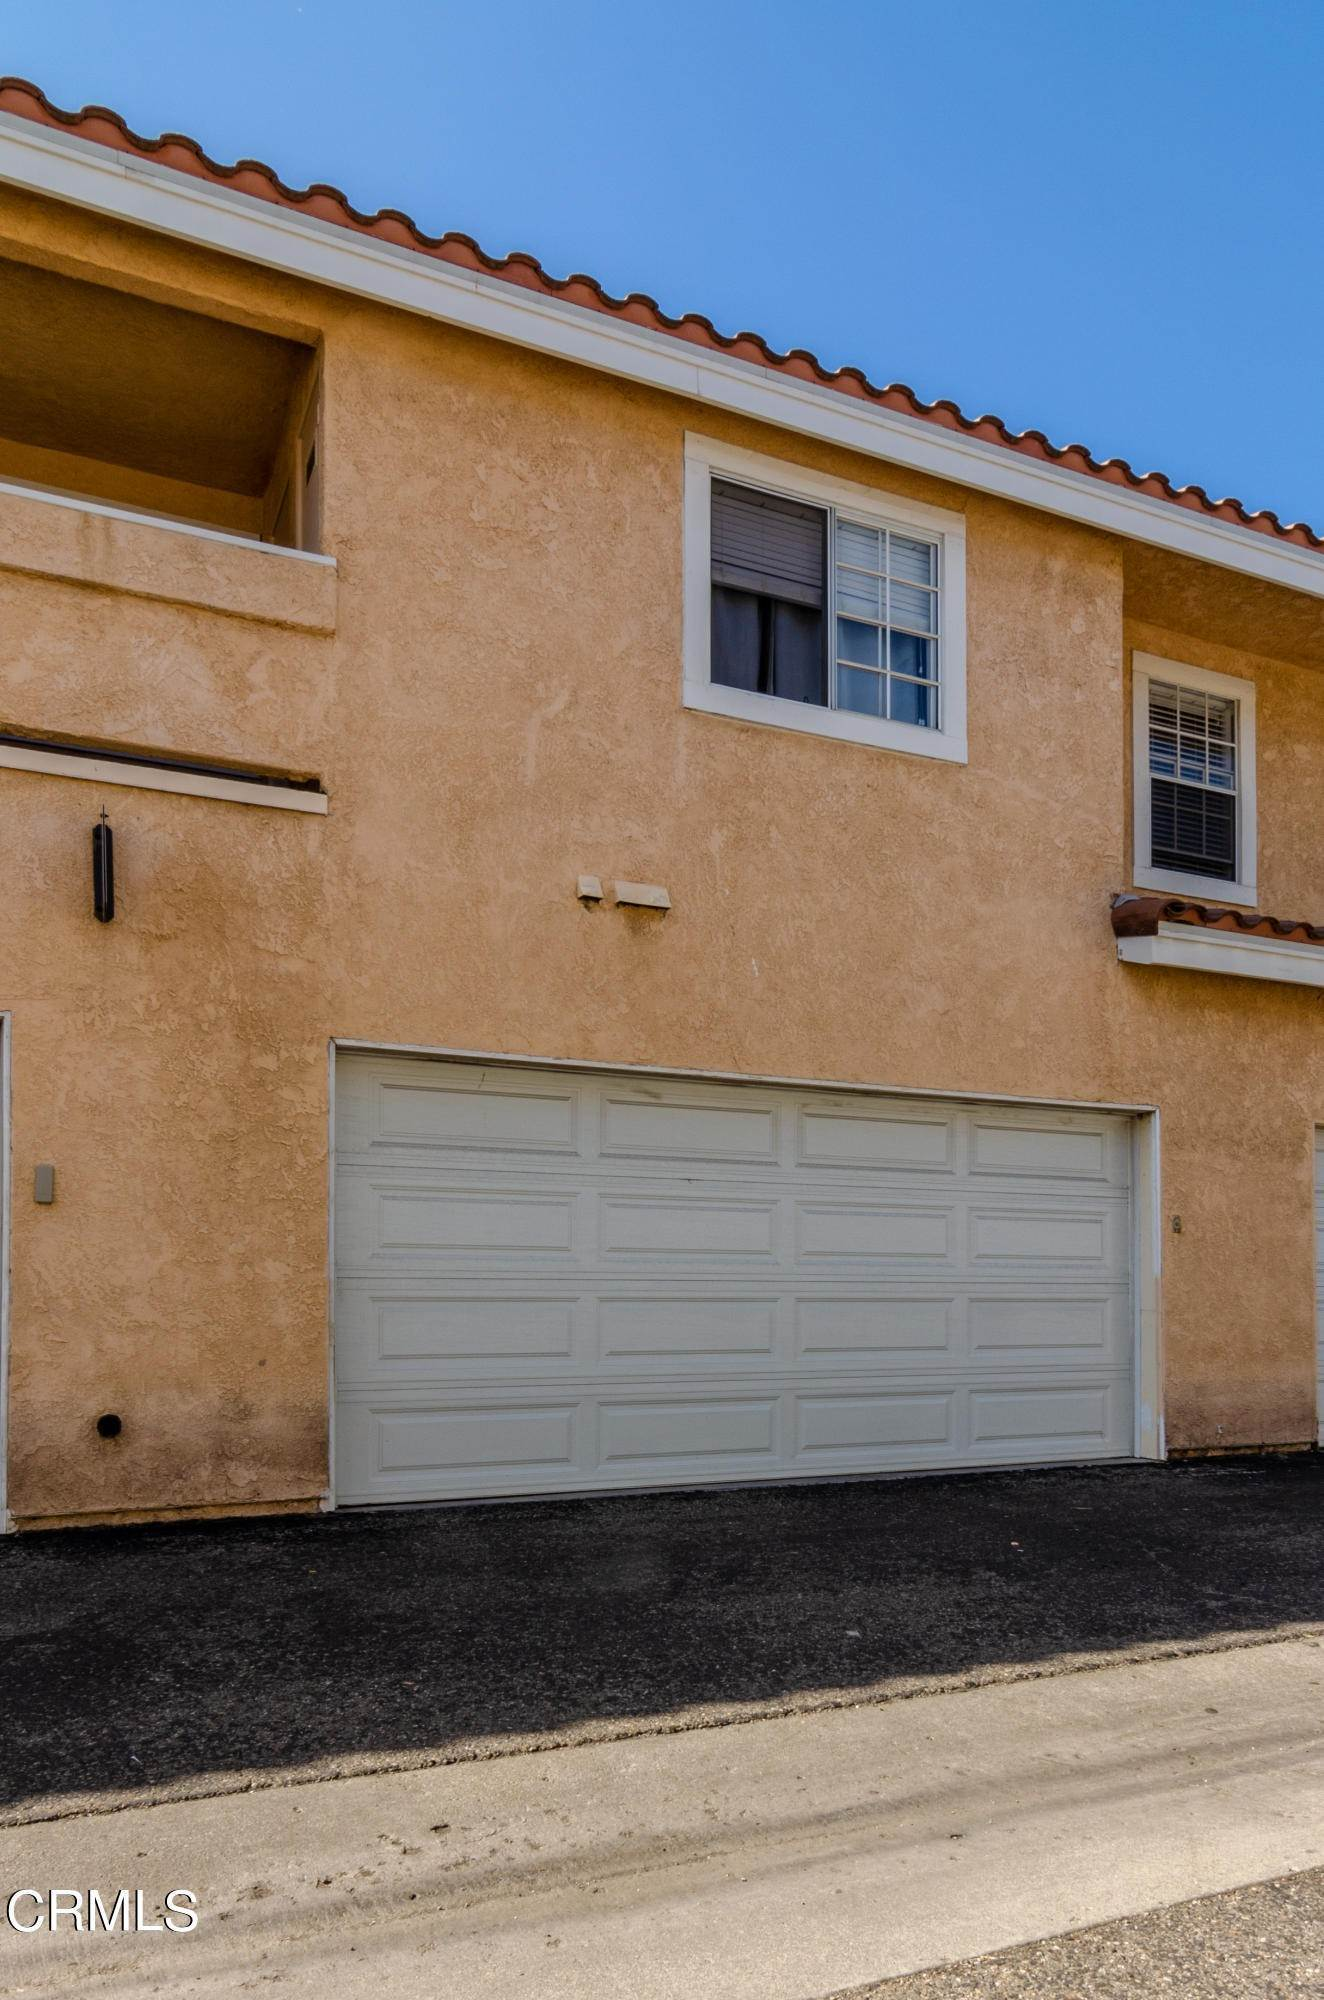 27. Condominiums for Sale at 2142 Blackberry Circle Oxnard, California 93036 United States